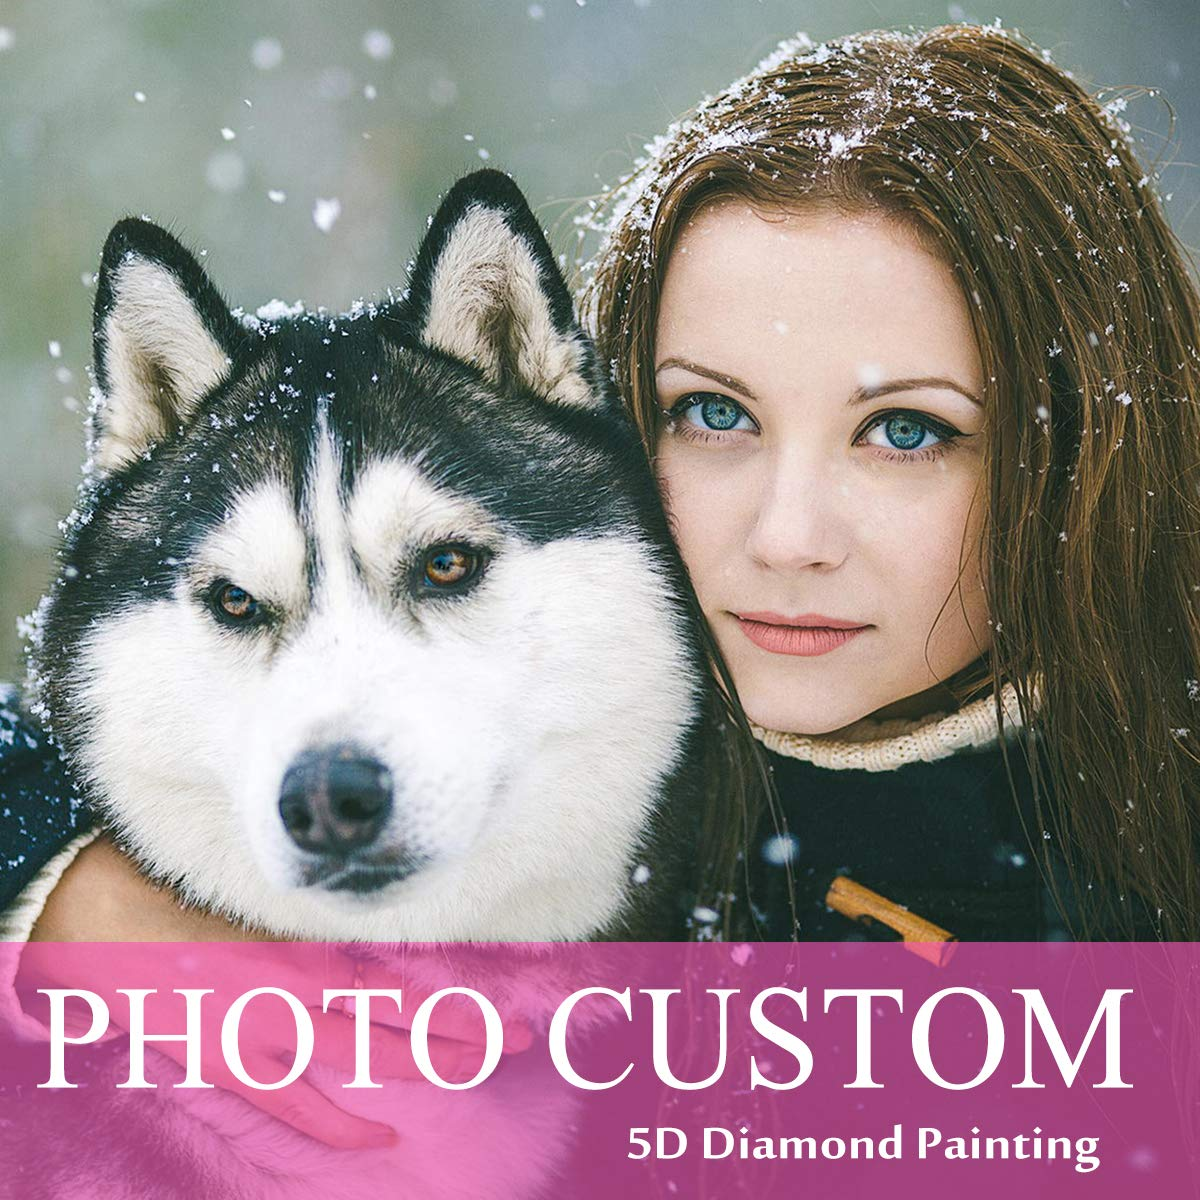 Custom Diamond Painting Kits Full Drill for Adults,Personalized Photo Customized Diamond Painting,Private Custom Your Own Picture (Round Drill, 23.6x31.5inch) by COLEEY